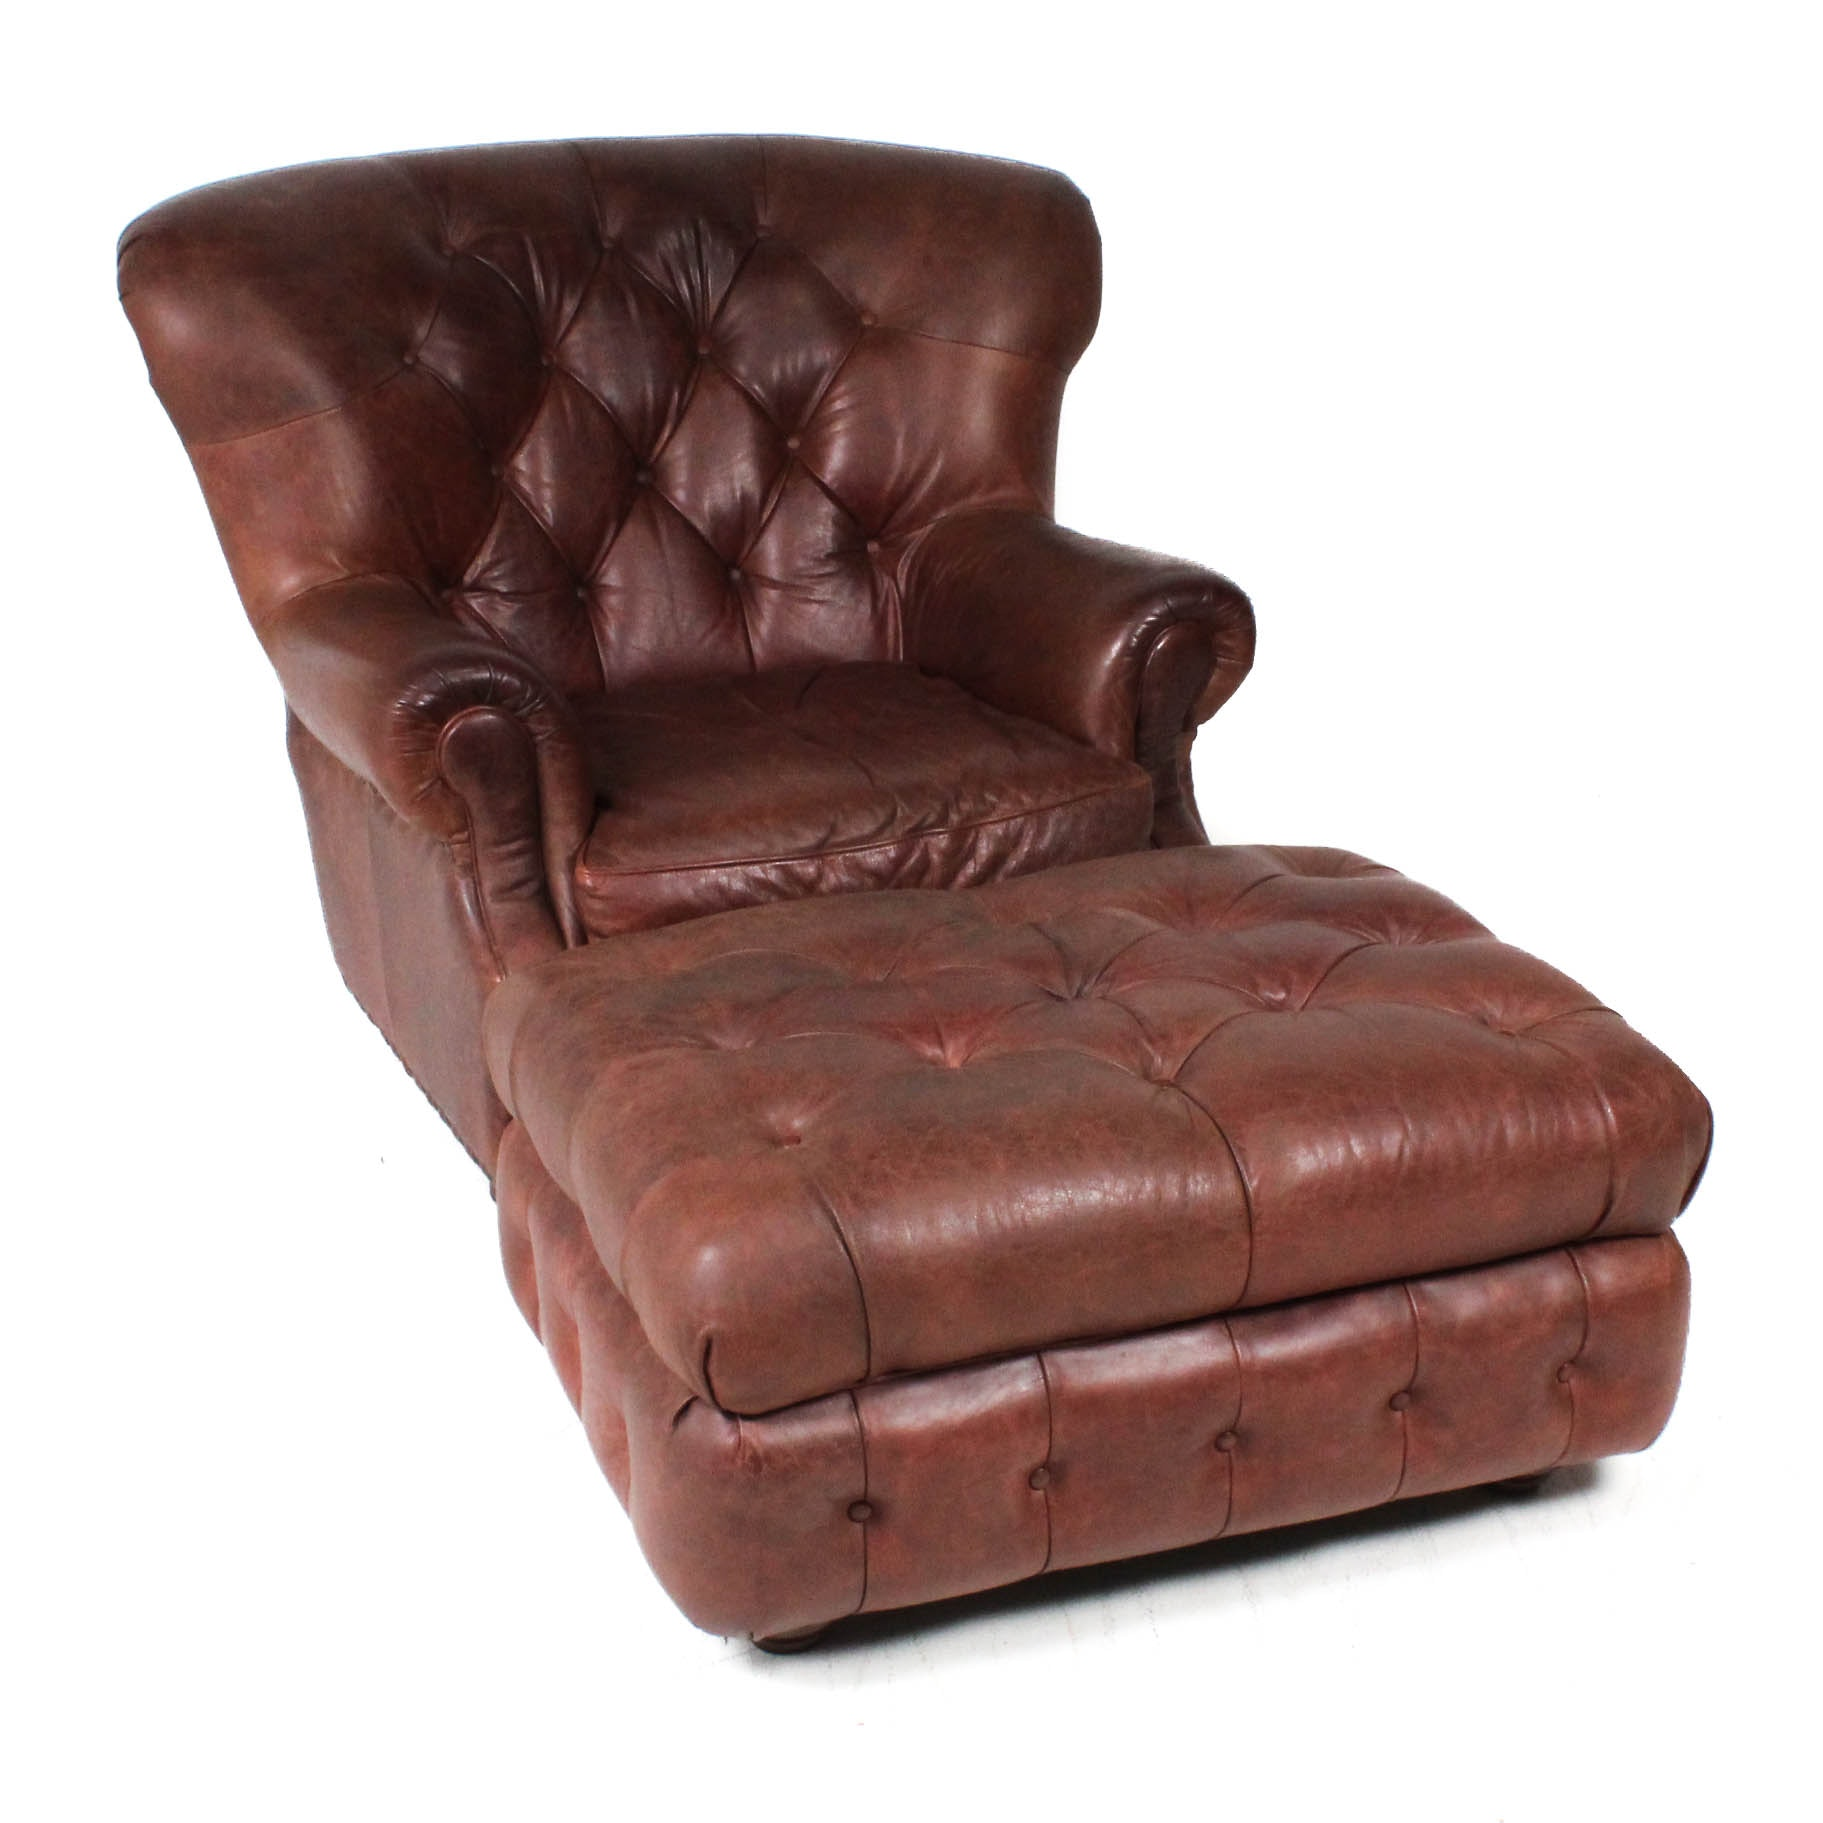 Italian Leather Chair and Ottoman